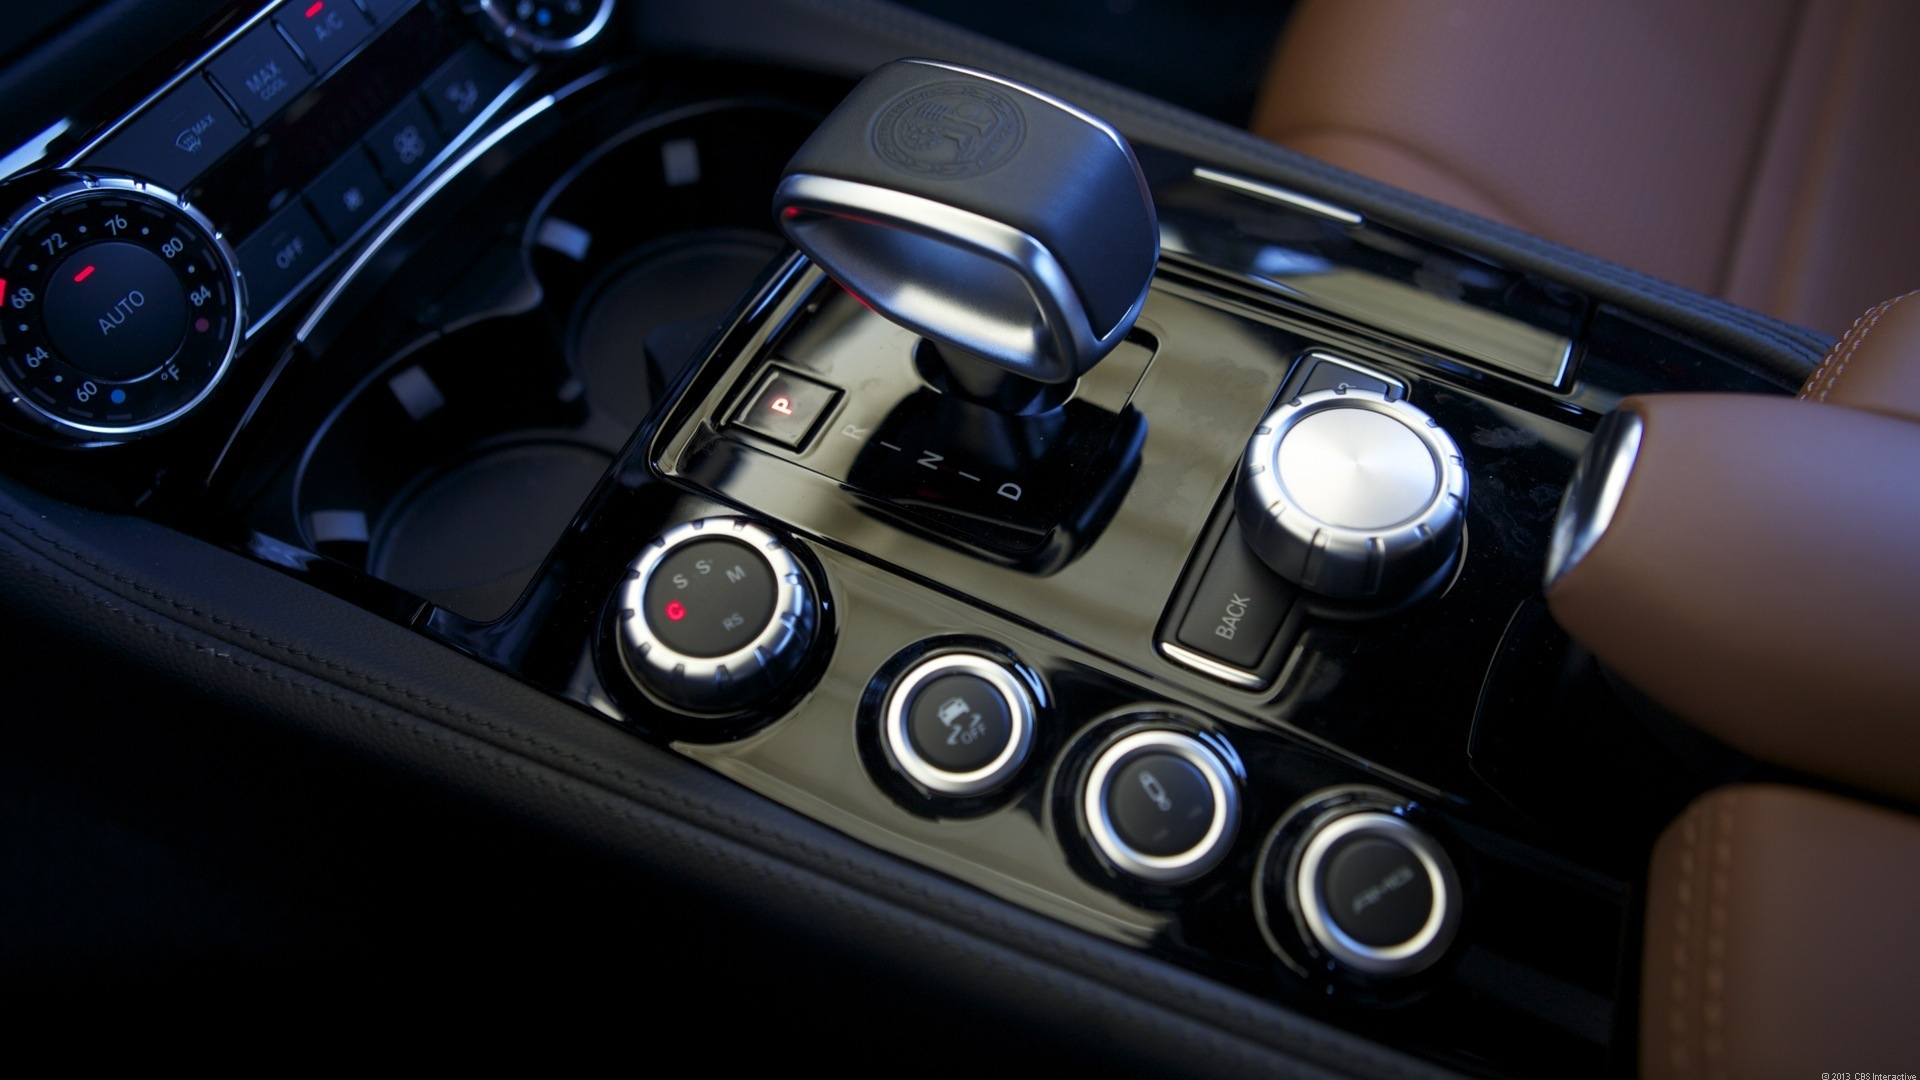 shifter and buttons